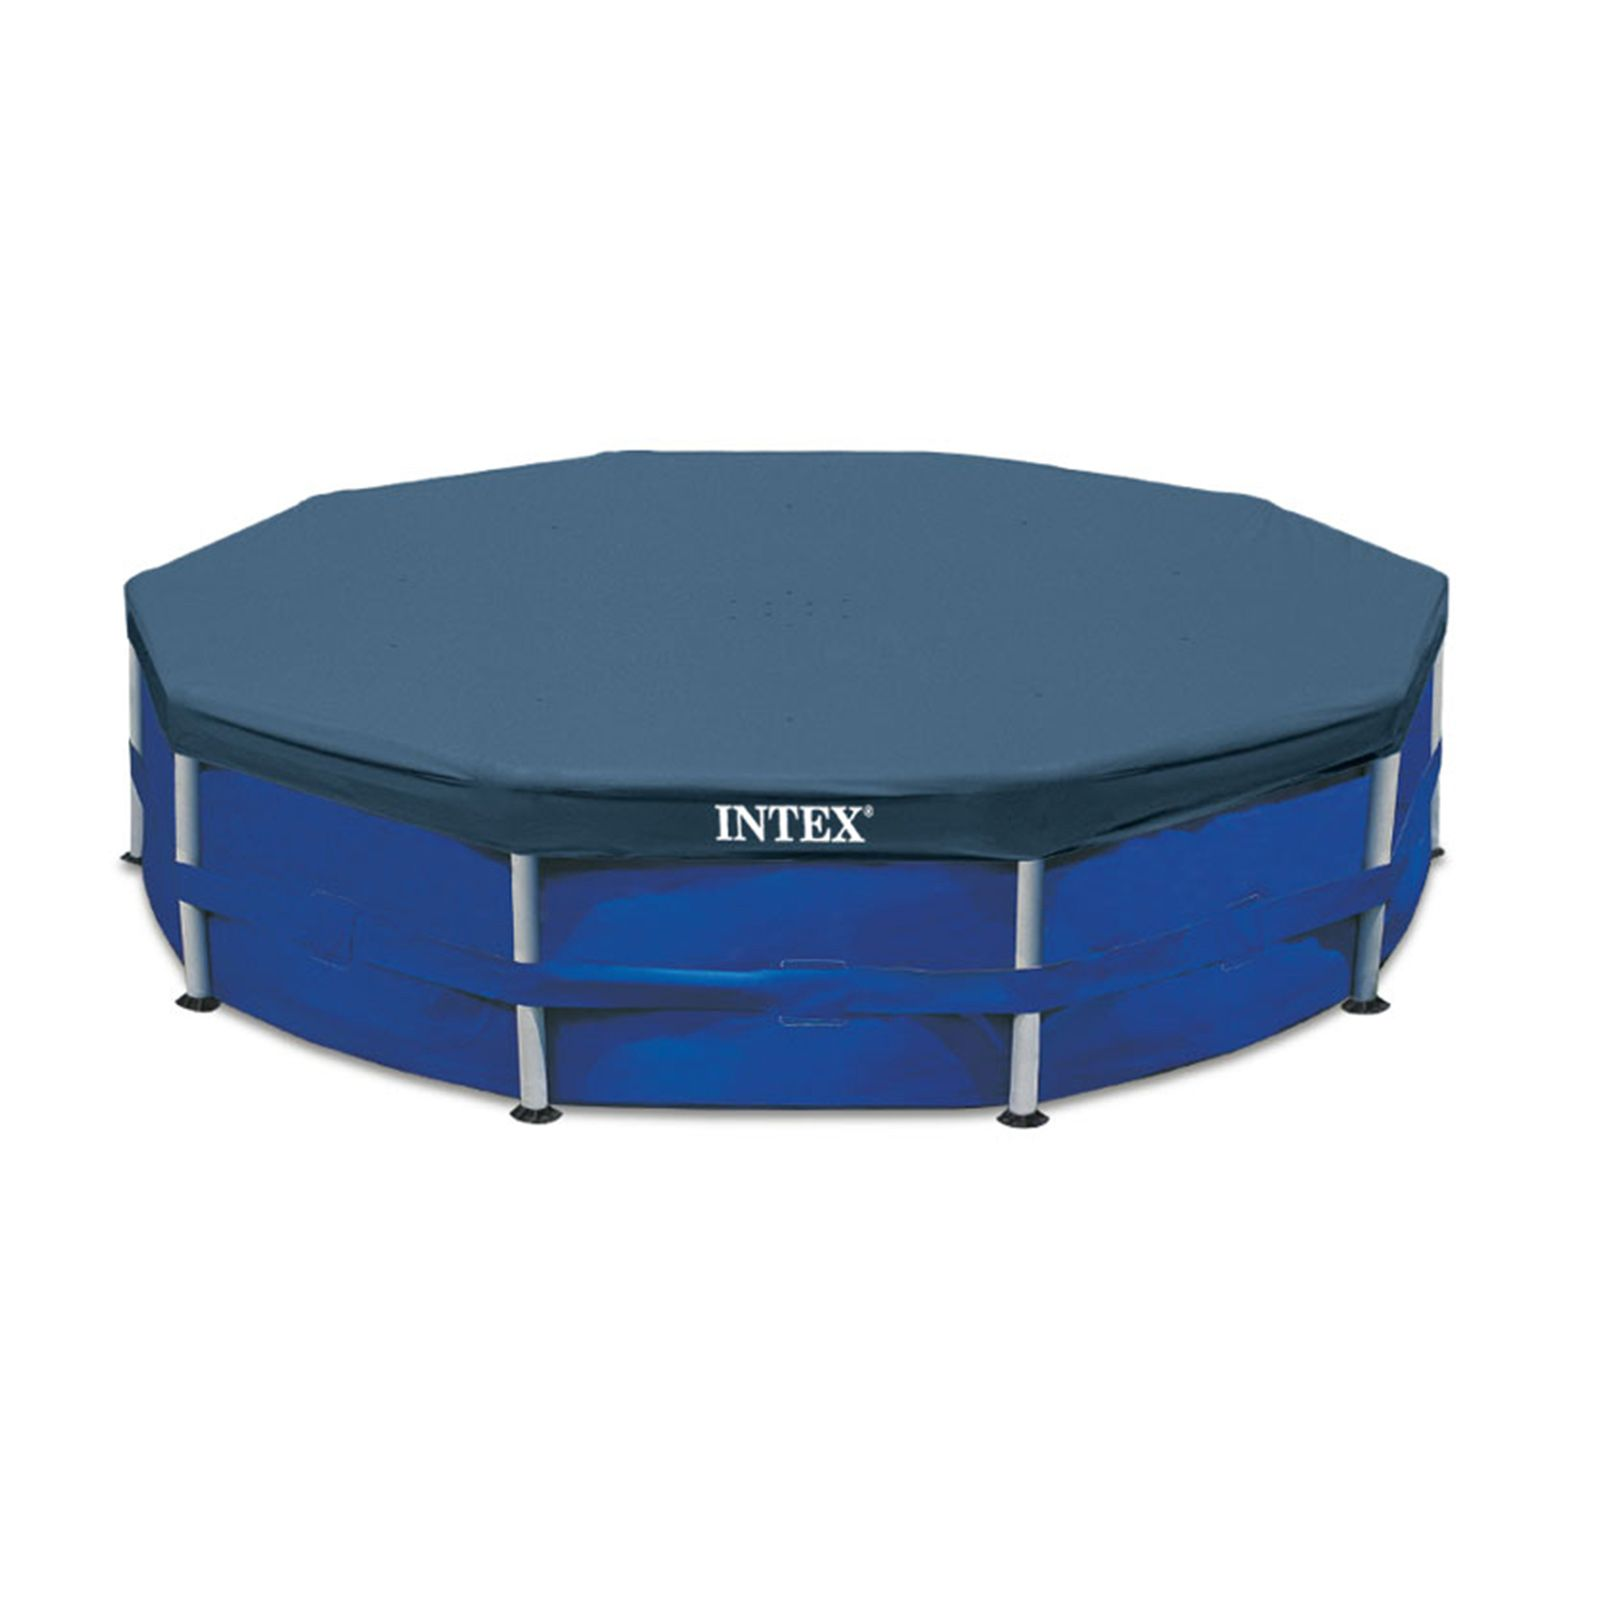 B che pour piscine tubulaire 3 05 m intex piscine for Bache piscine intex 3 05